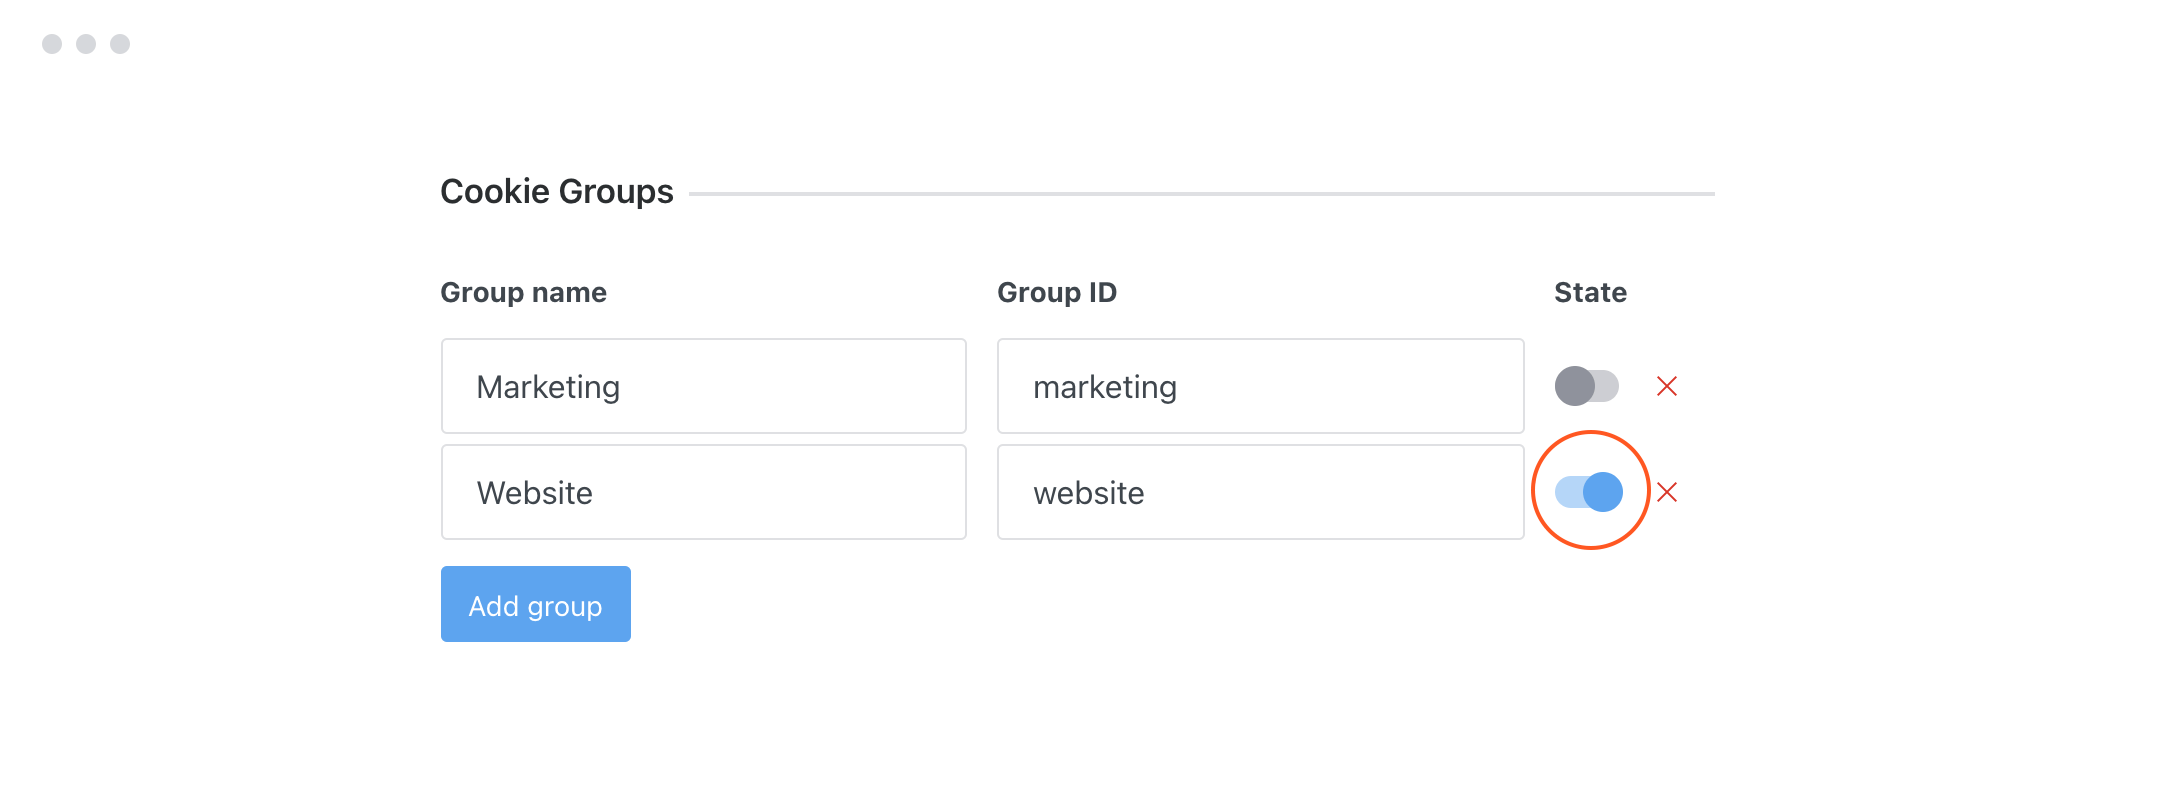 Cookie Group States GDPR